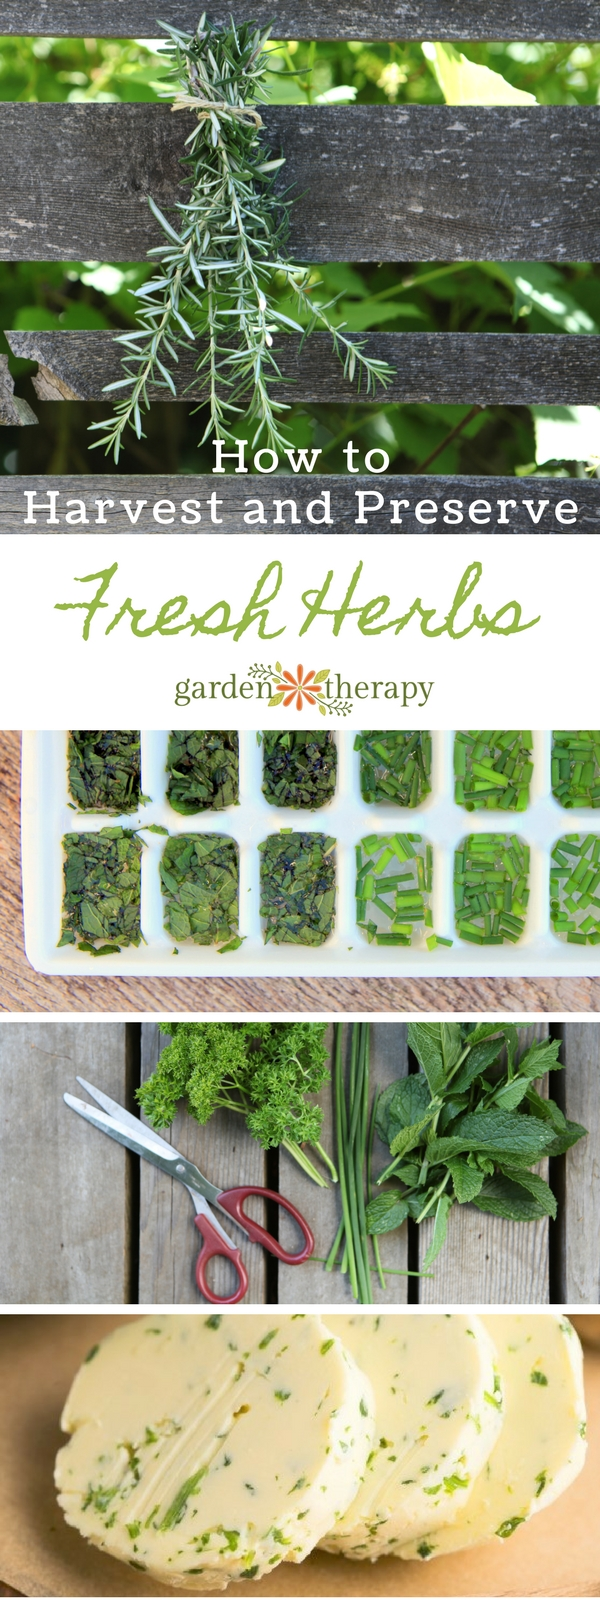 How to Harvest and Preserve Fresh Herbs